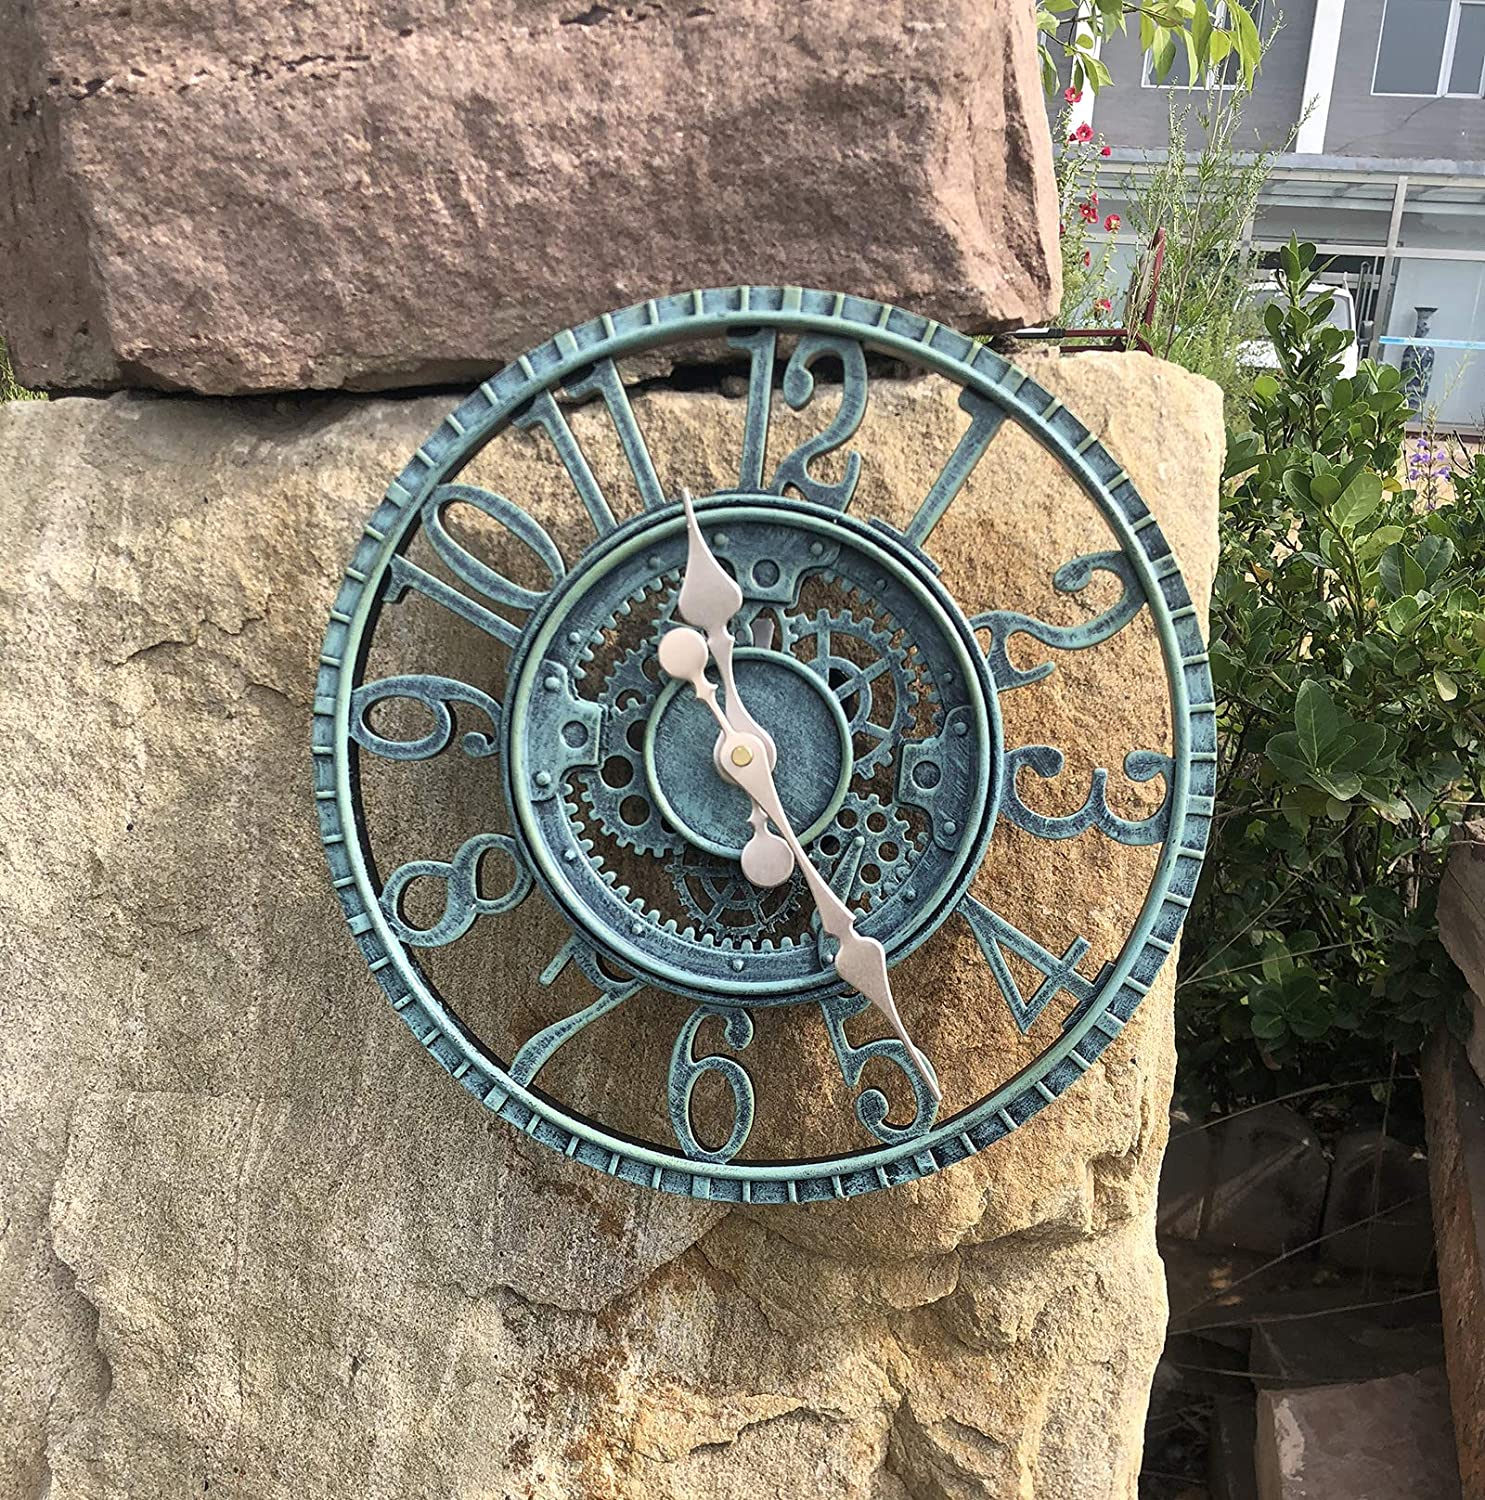 Outdoor/Indoor Wall Clock Waterproof, Silent Non Ticking 12 Inch Clock Decor Clock for Patio, Garden, Pool or Hanging Outside